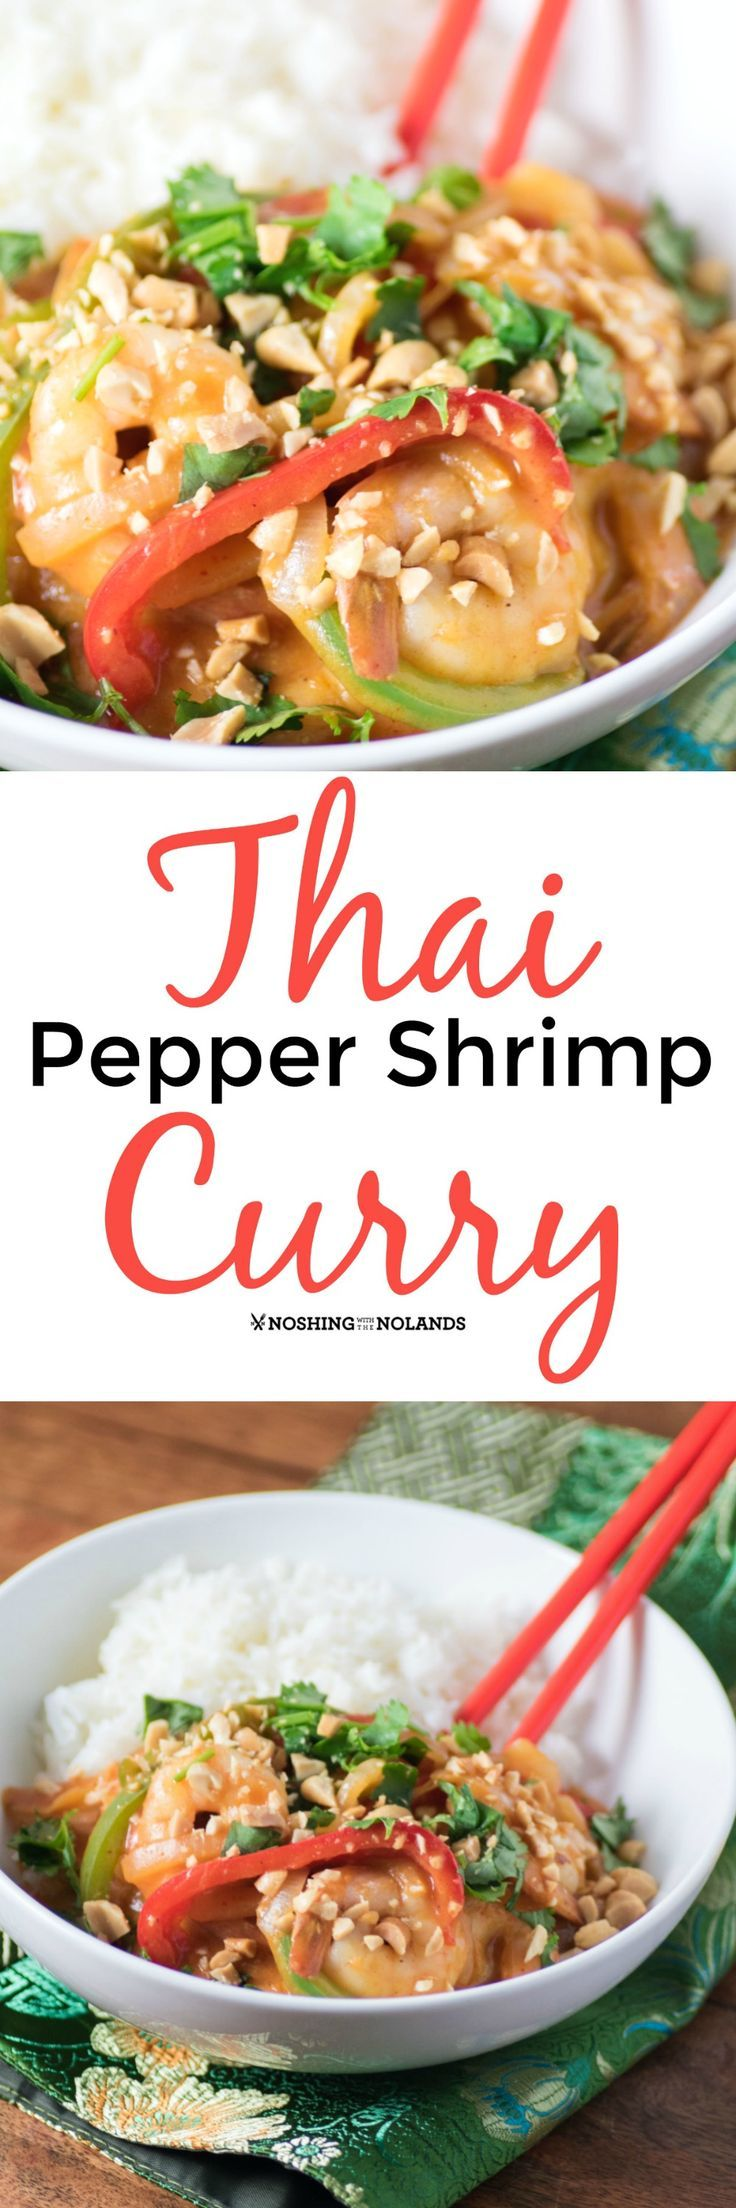 Thai Pepper Shrimp Curry by Noshing With The Nolands is a delicious weeknight meal that comes together quickly and easily. Your family will love it!